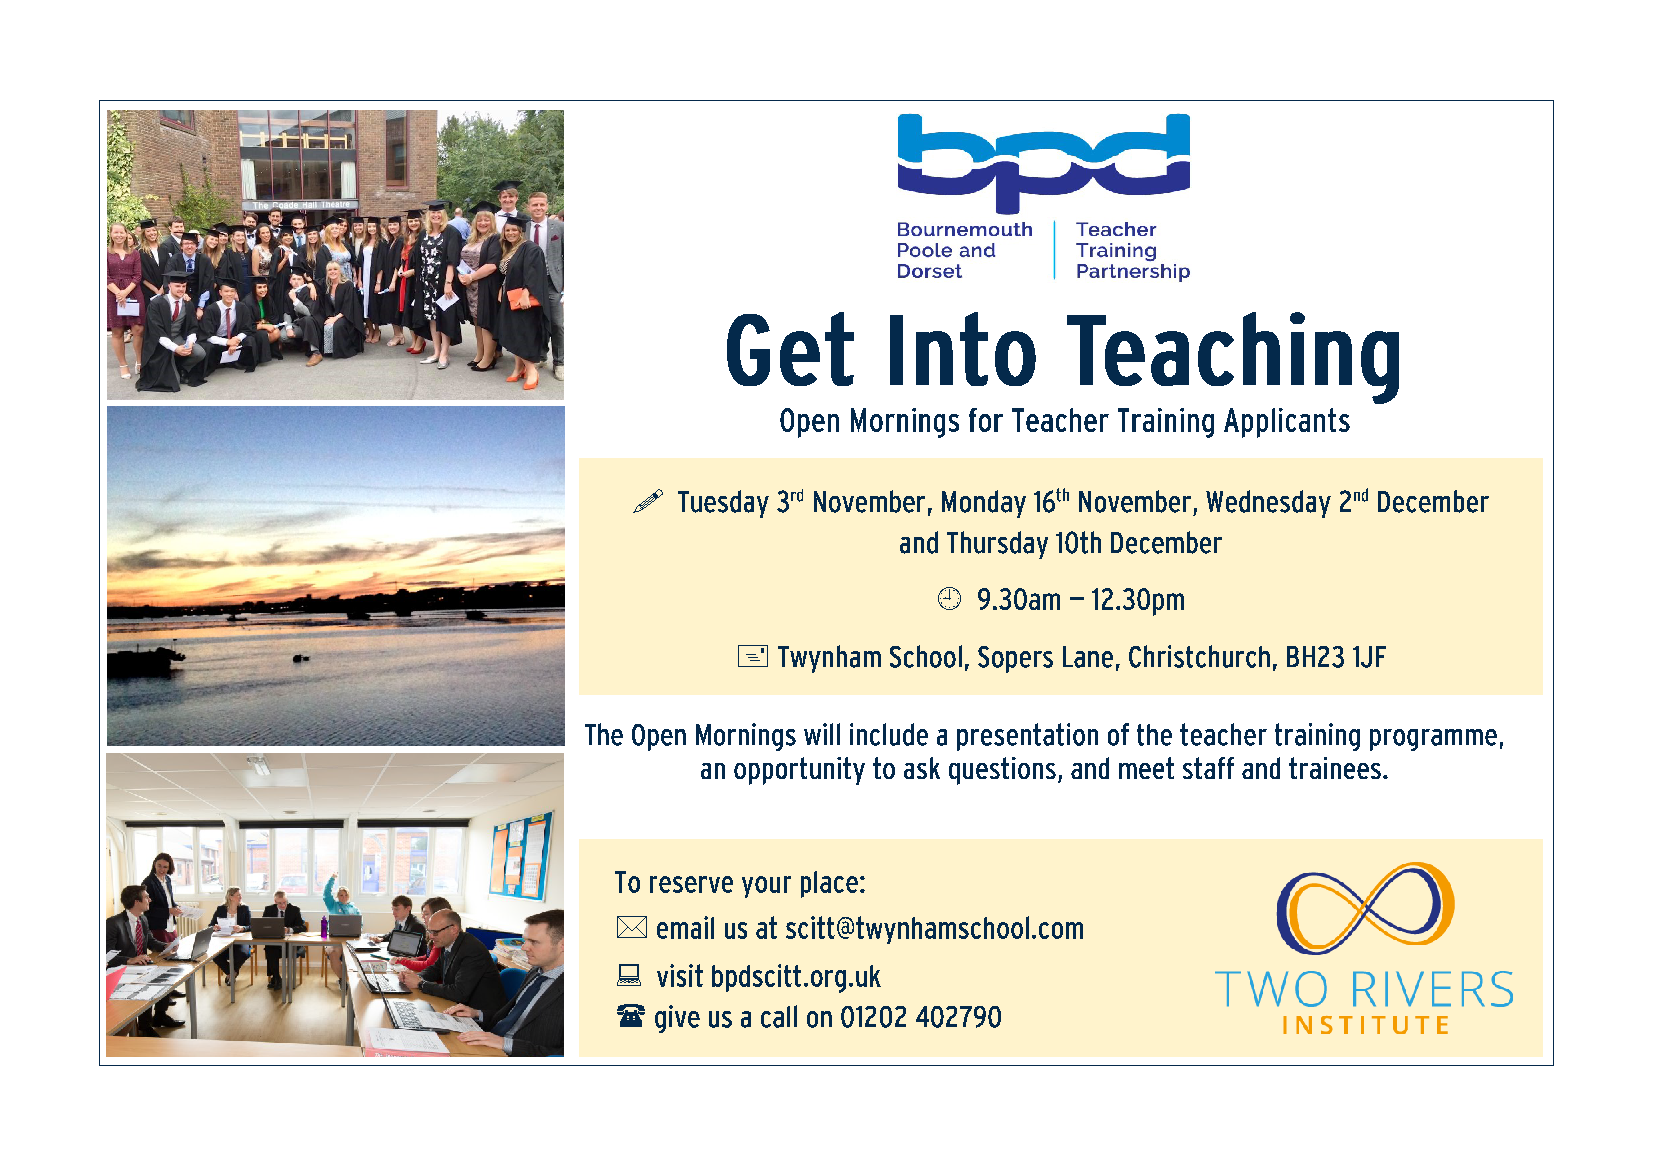 BPD Scitt Open Morning Flyer 2020